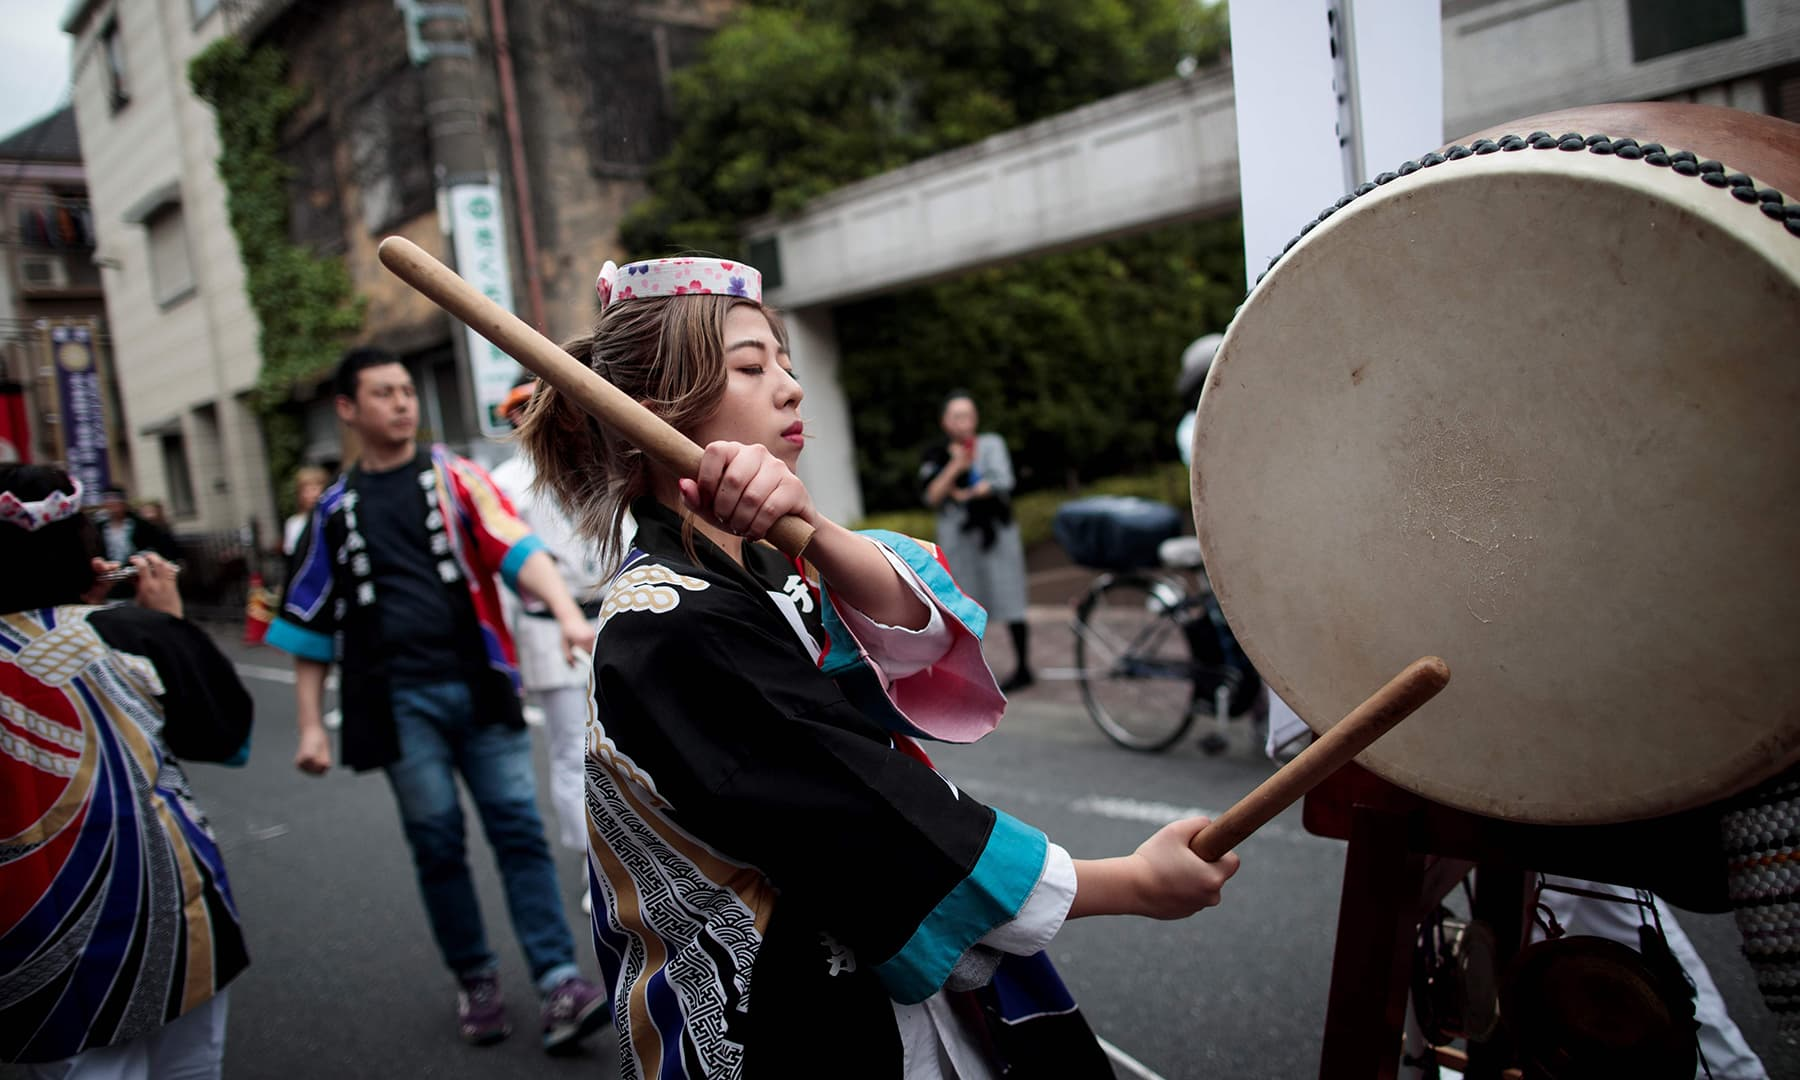 A woman plays a drum during a ceremony to celebrate the accession of the new emperor to the throne in the Nakanobu neighbourhood of Tokyo on May 1, 2019. — AFP